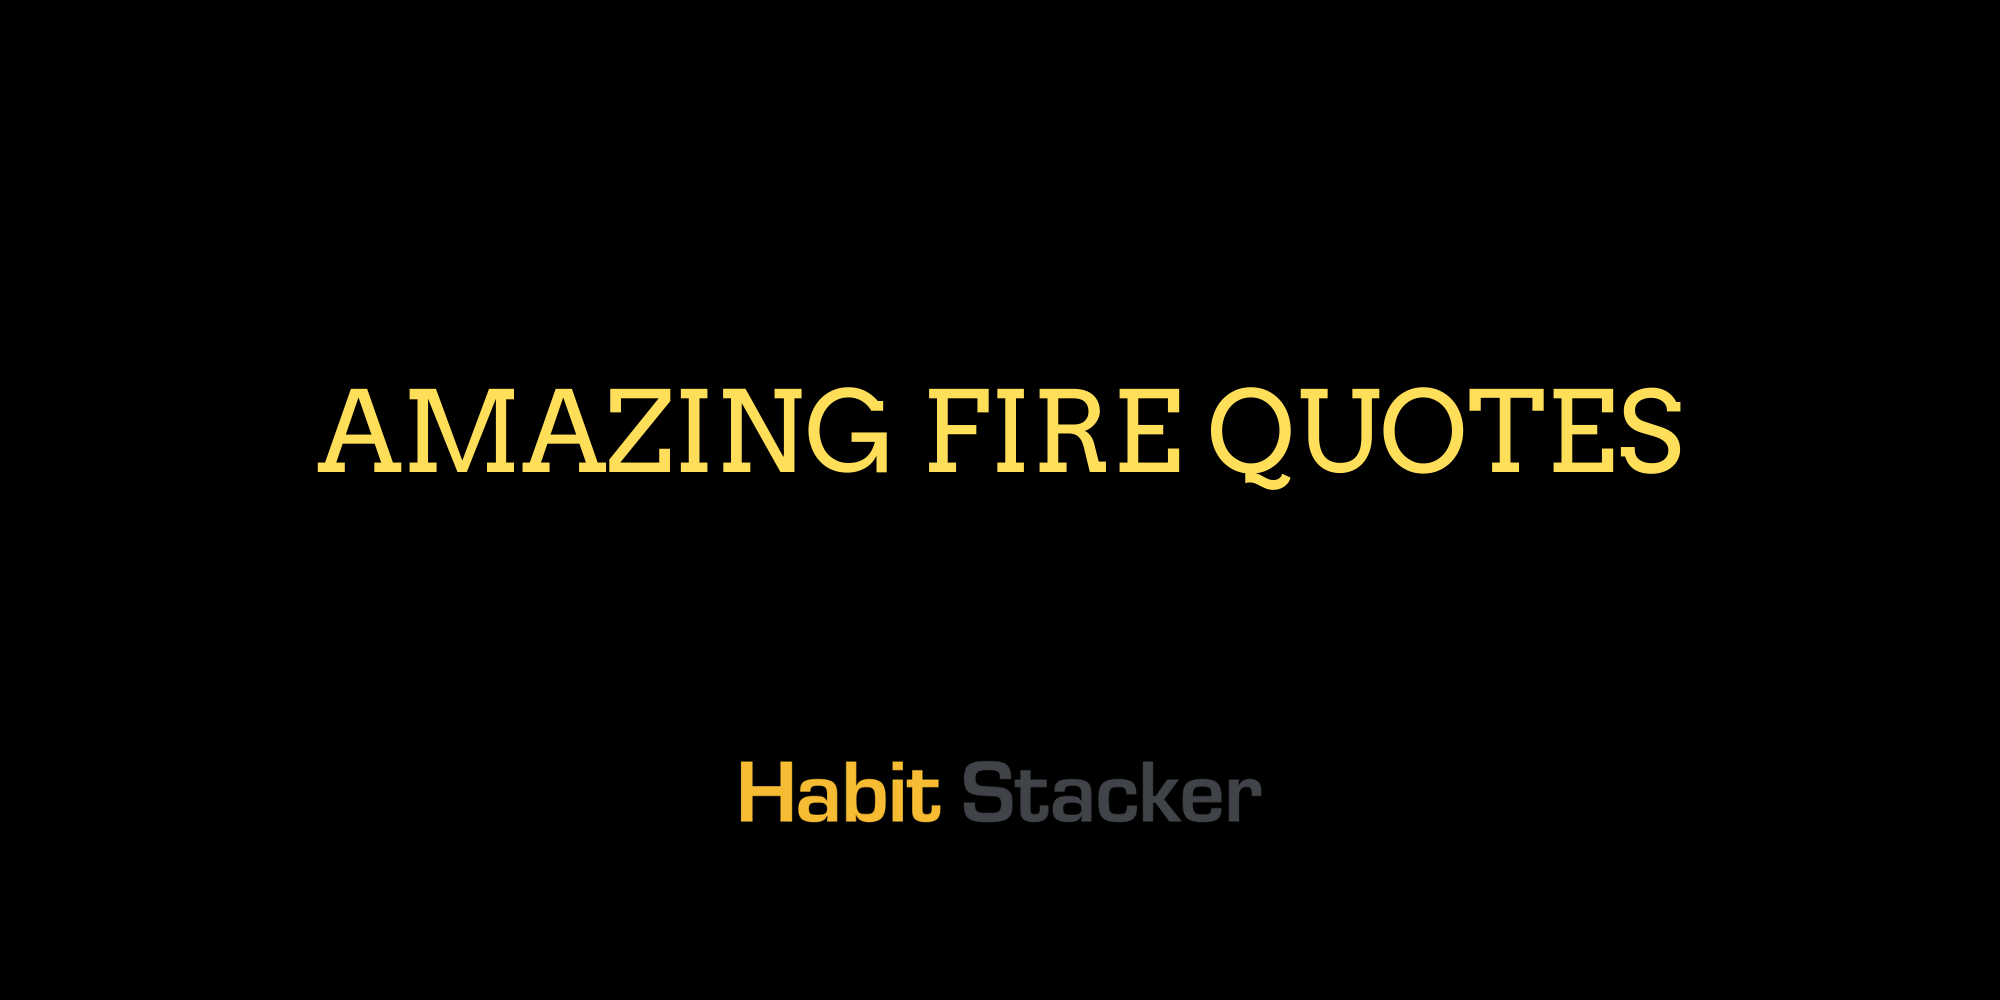 Amazing Fire Quotes